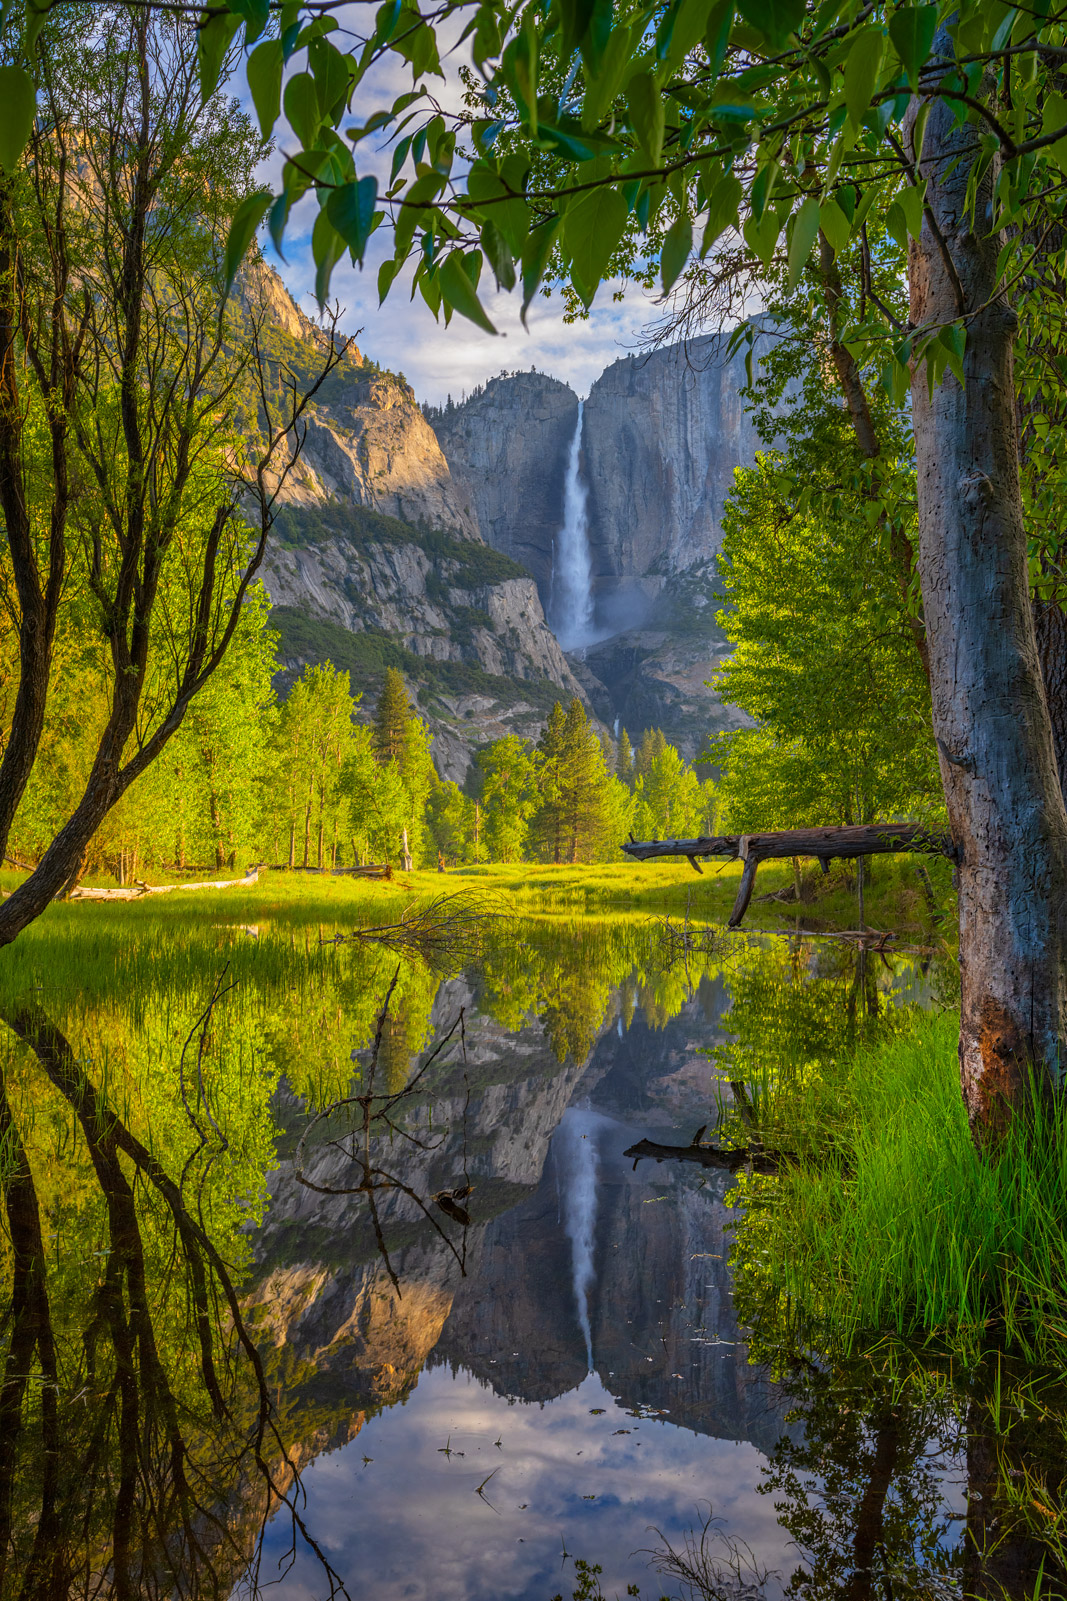 A Limited Edition, Fine Art photograph of Yosemite Falls reflecting under a tree in the edge of the Merced River at Yosemite...